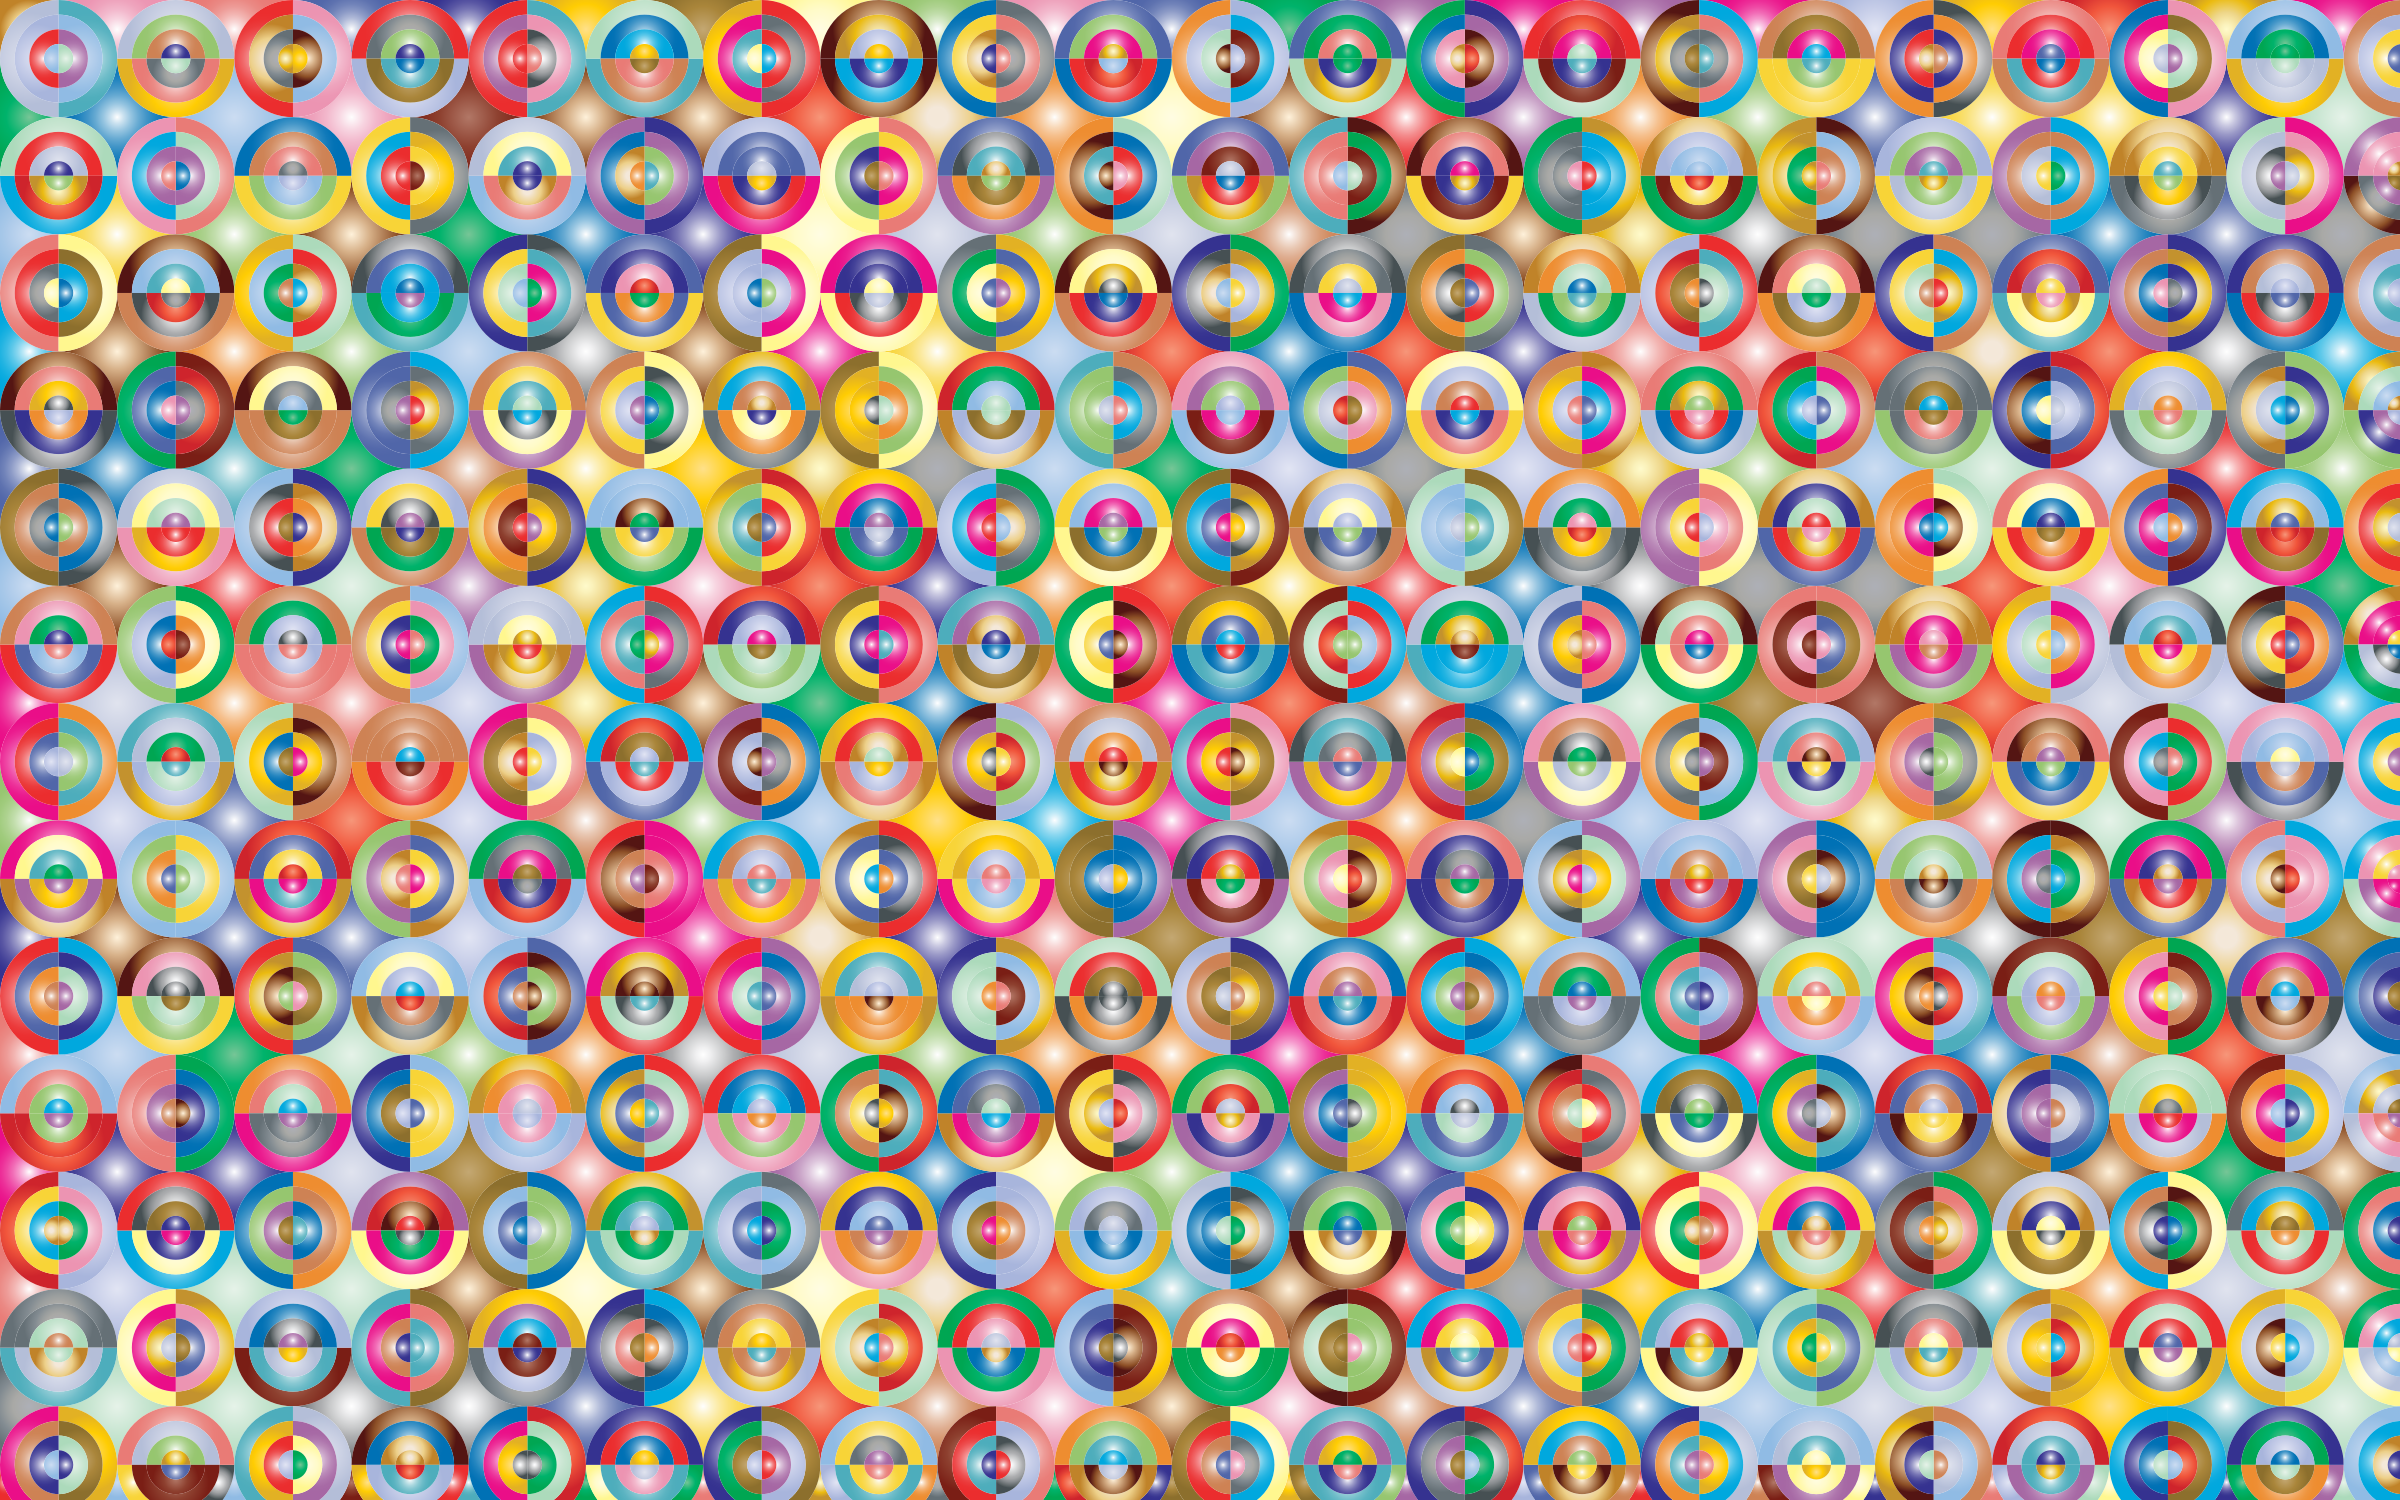 Prismatic Concentric Checkered Circles Pattern 2 by GDJ